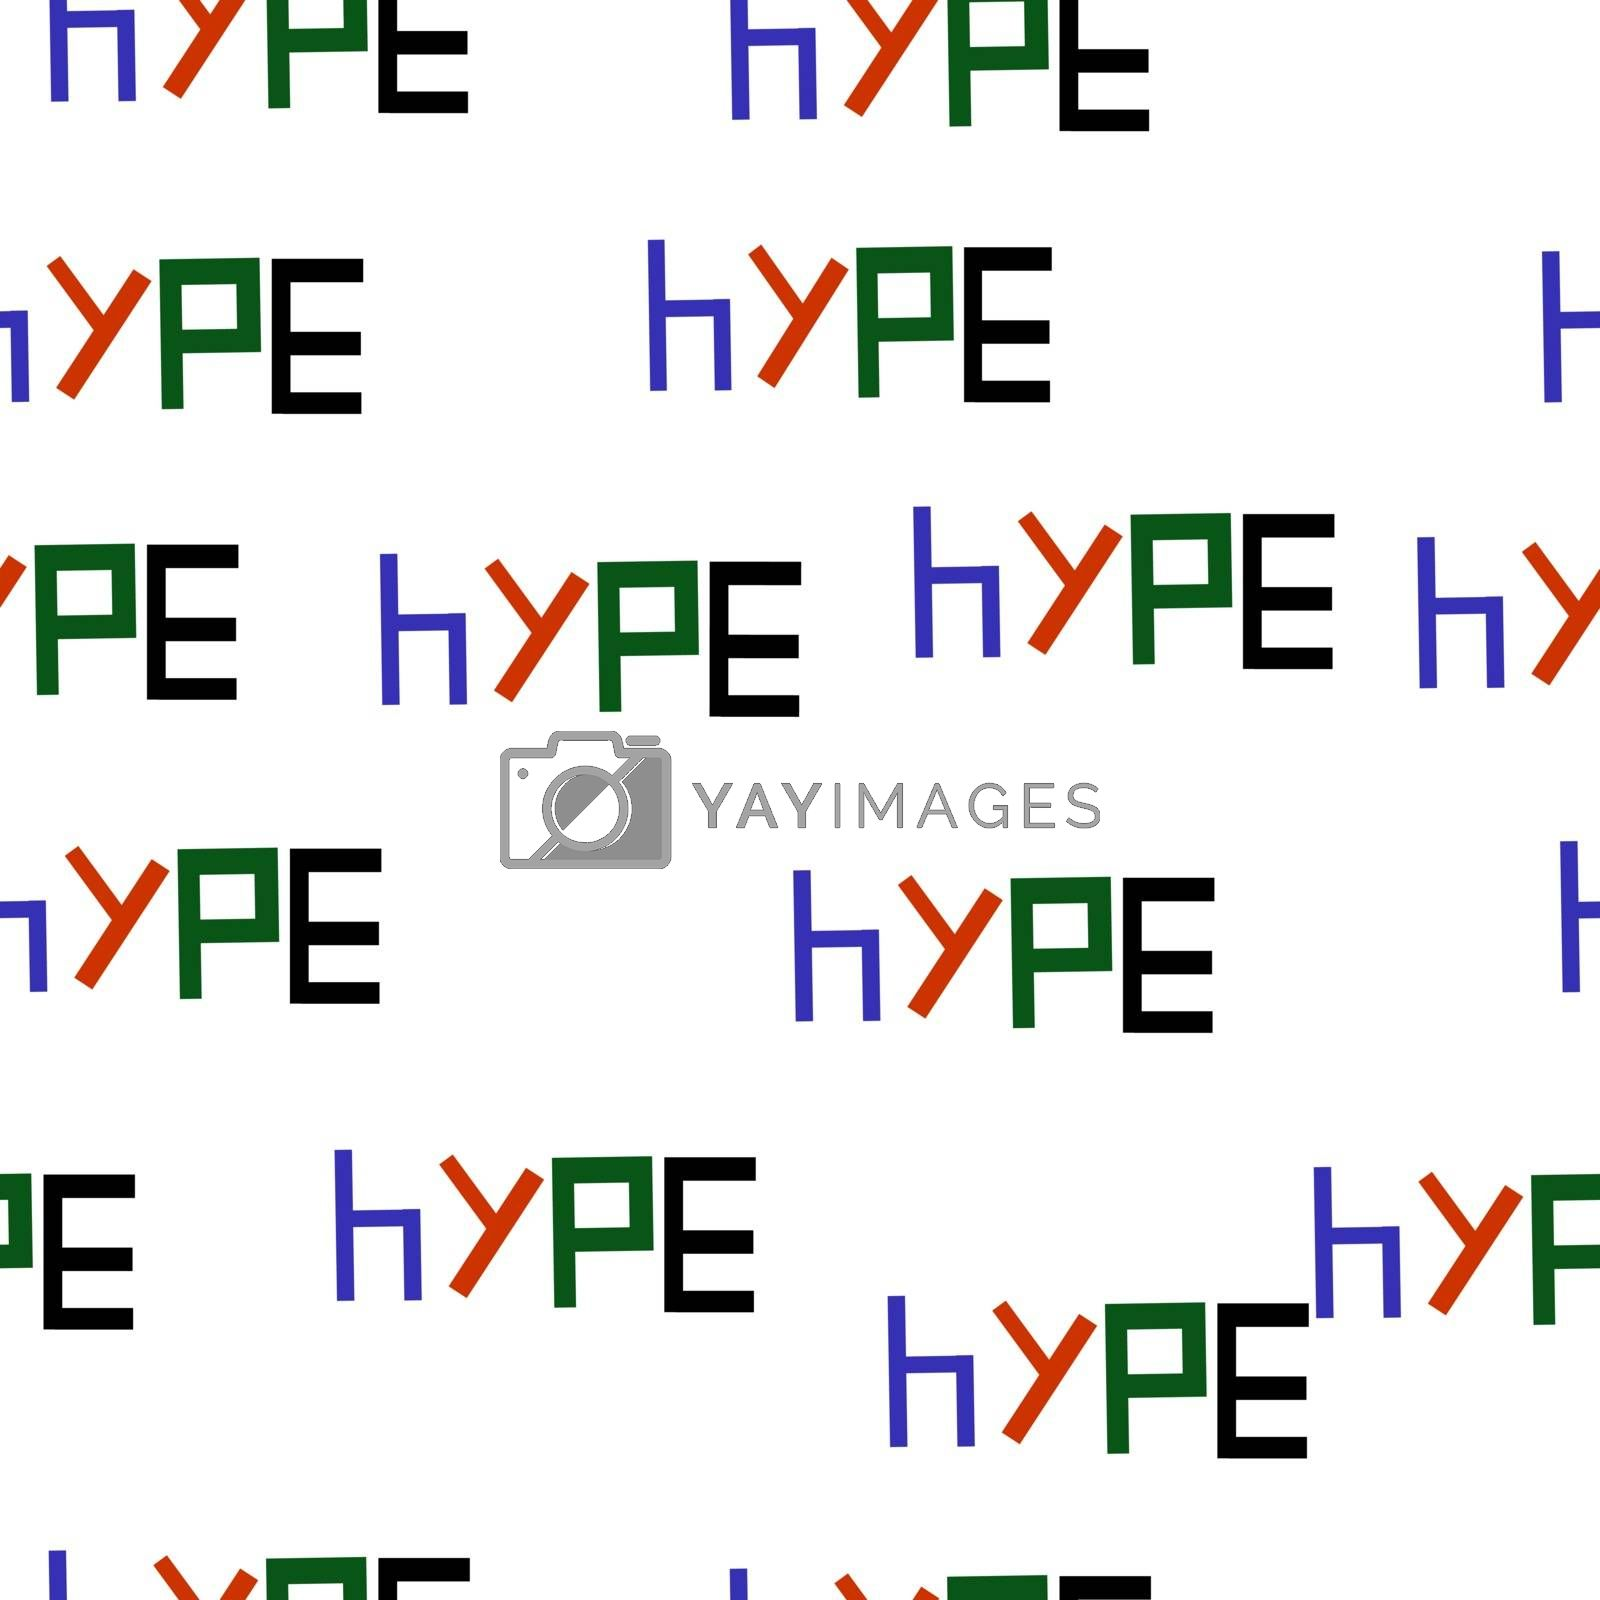 Seamless pattern of the word HYPE Vector illustration backround.